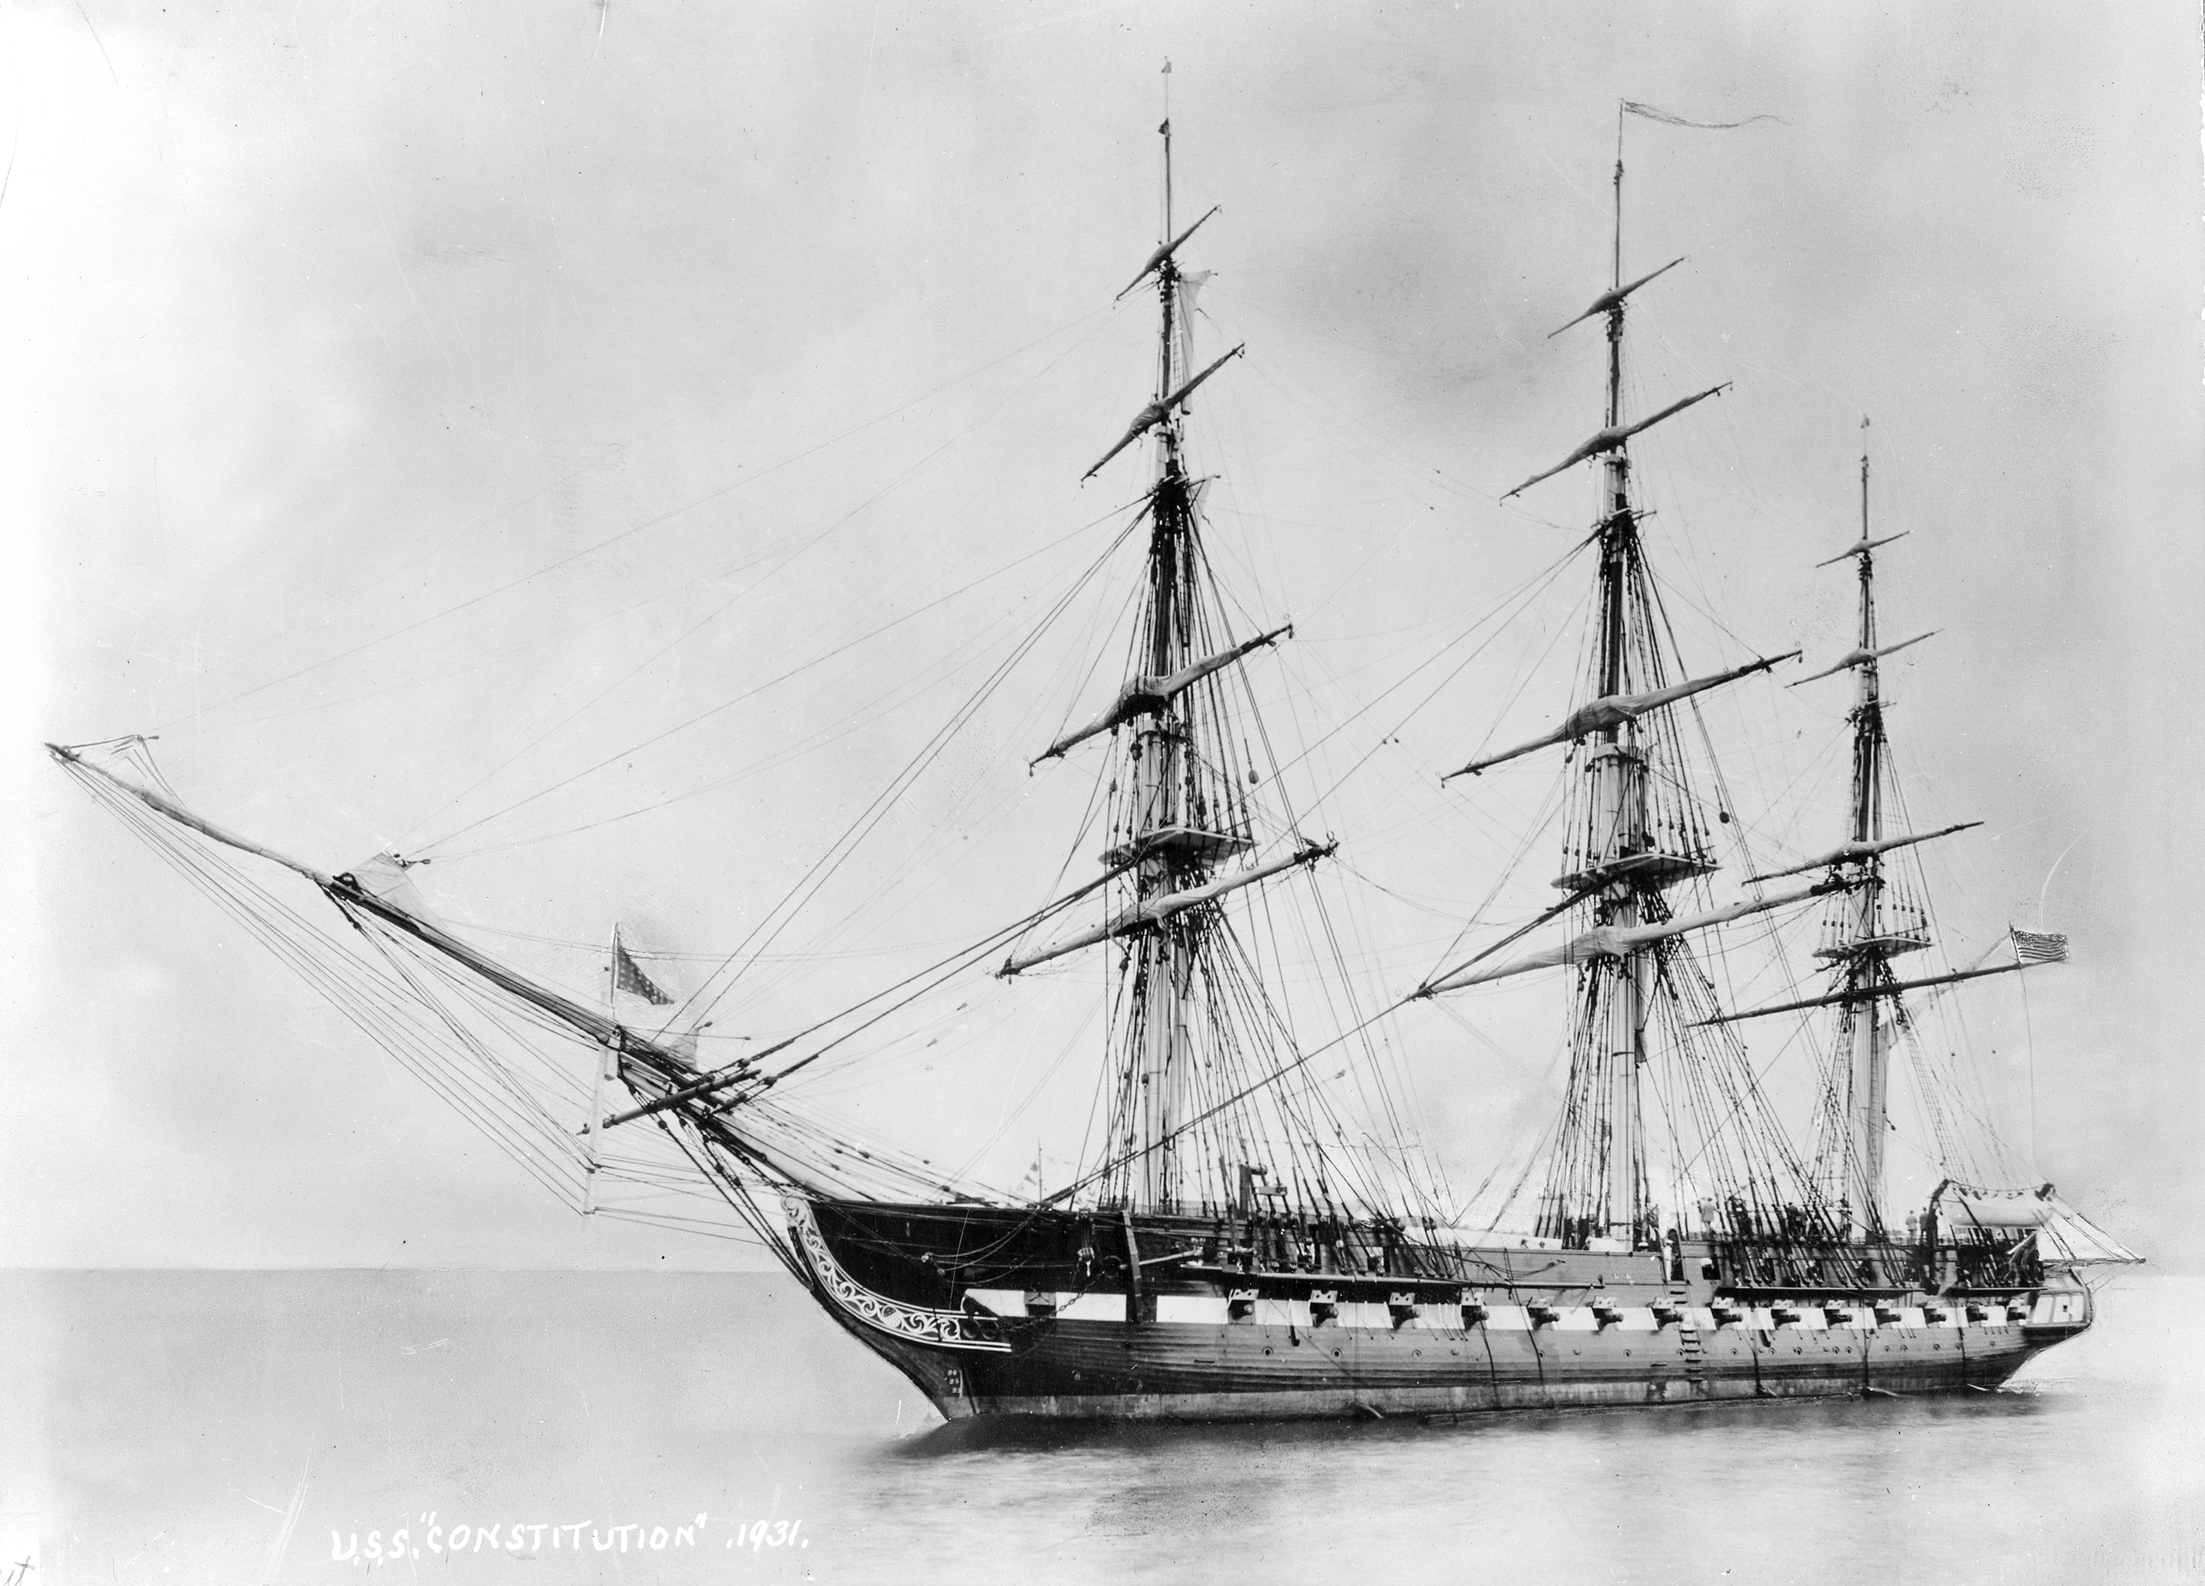 USS Constitution is shown in a 1931 photograph shortly after her recommissioning in July of that year after an extensive restoration. Naval Institute Photo Archive